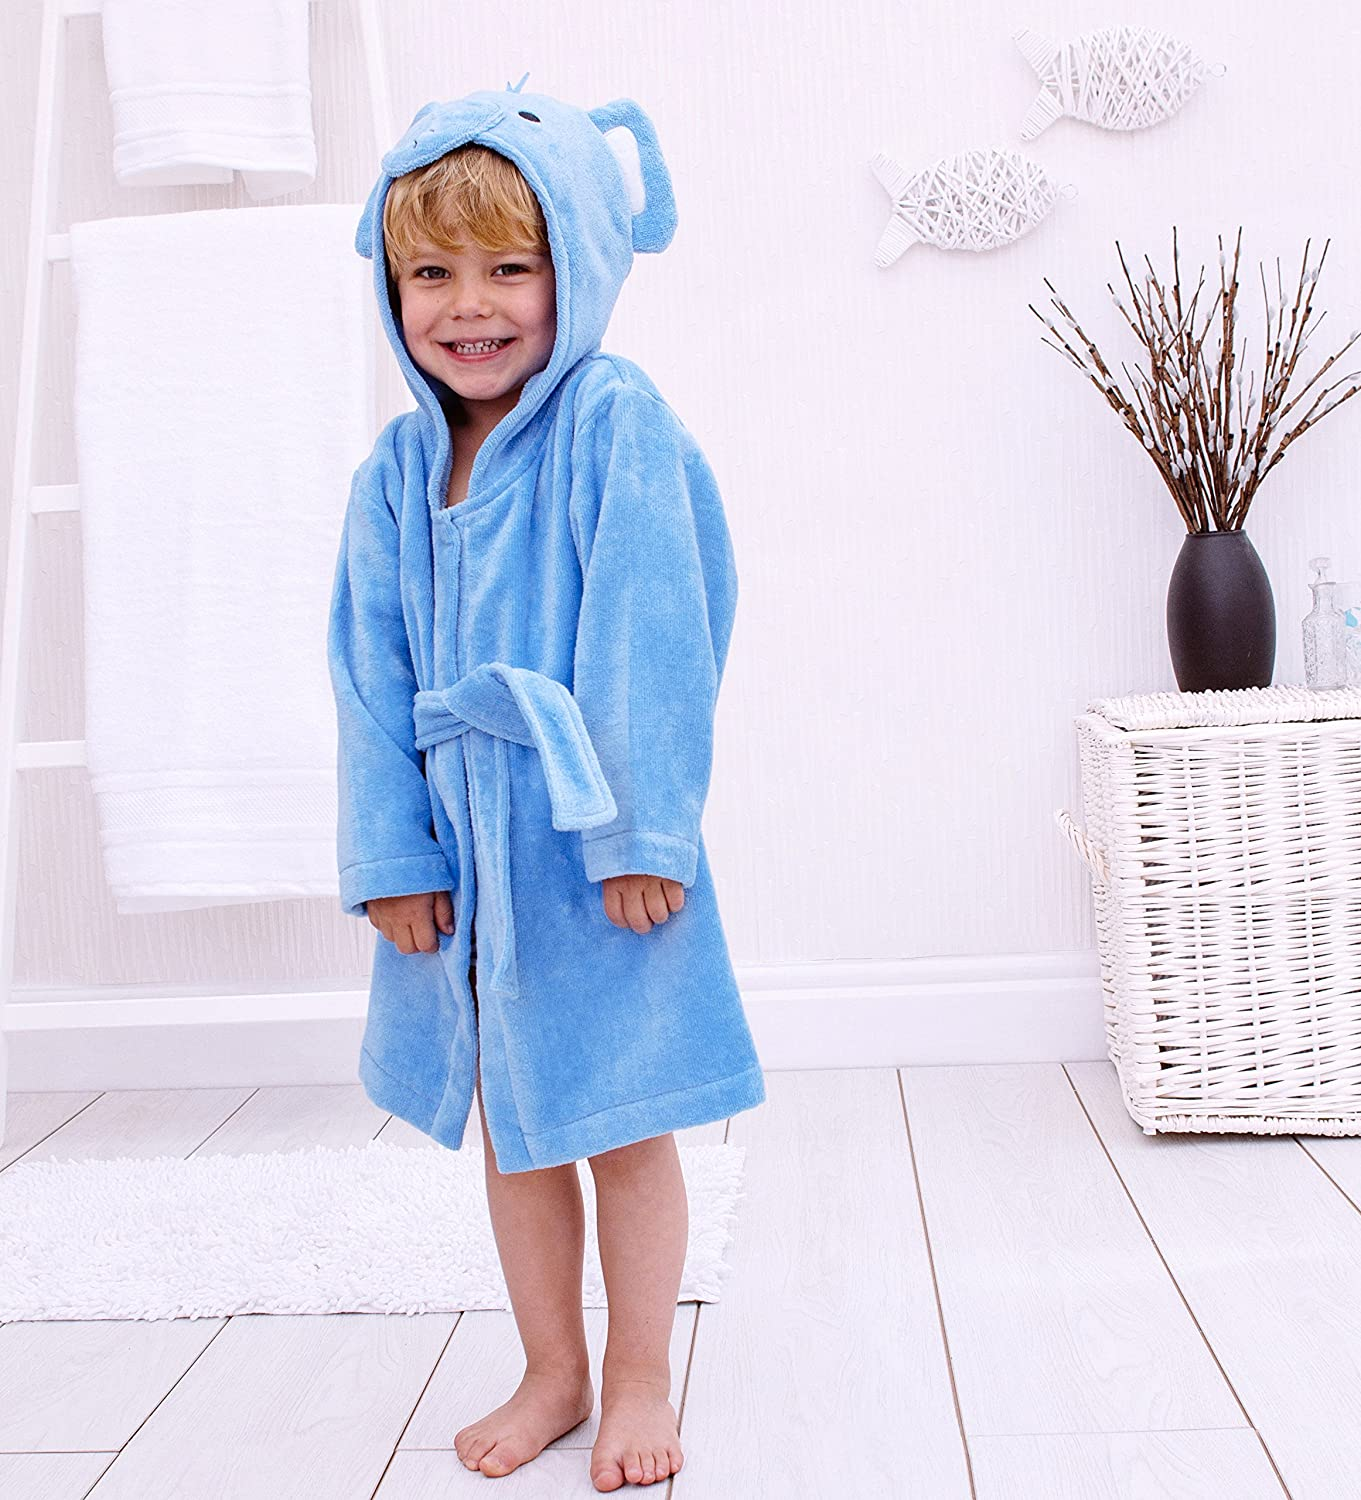 Bathing Bunnies Hooded Elephant Bath Robe Cotton for 1-3 Year Old Surrey AT Company Ltd 760408ETR